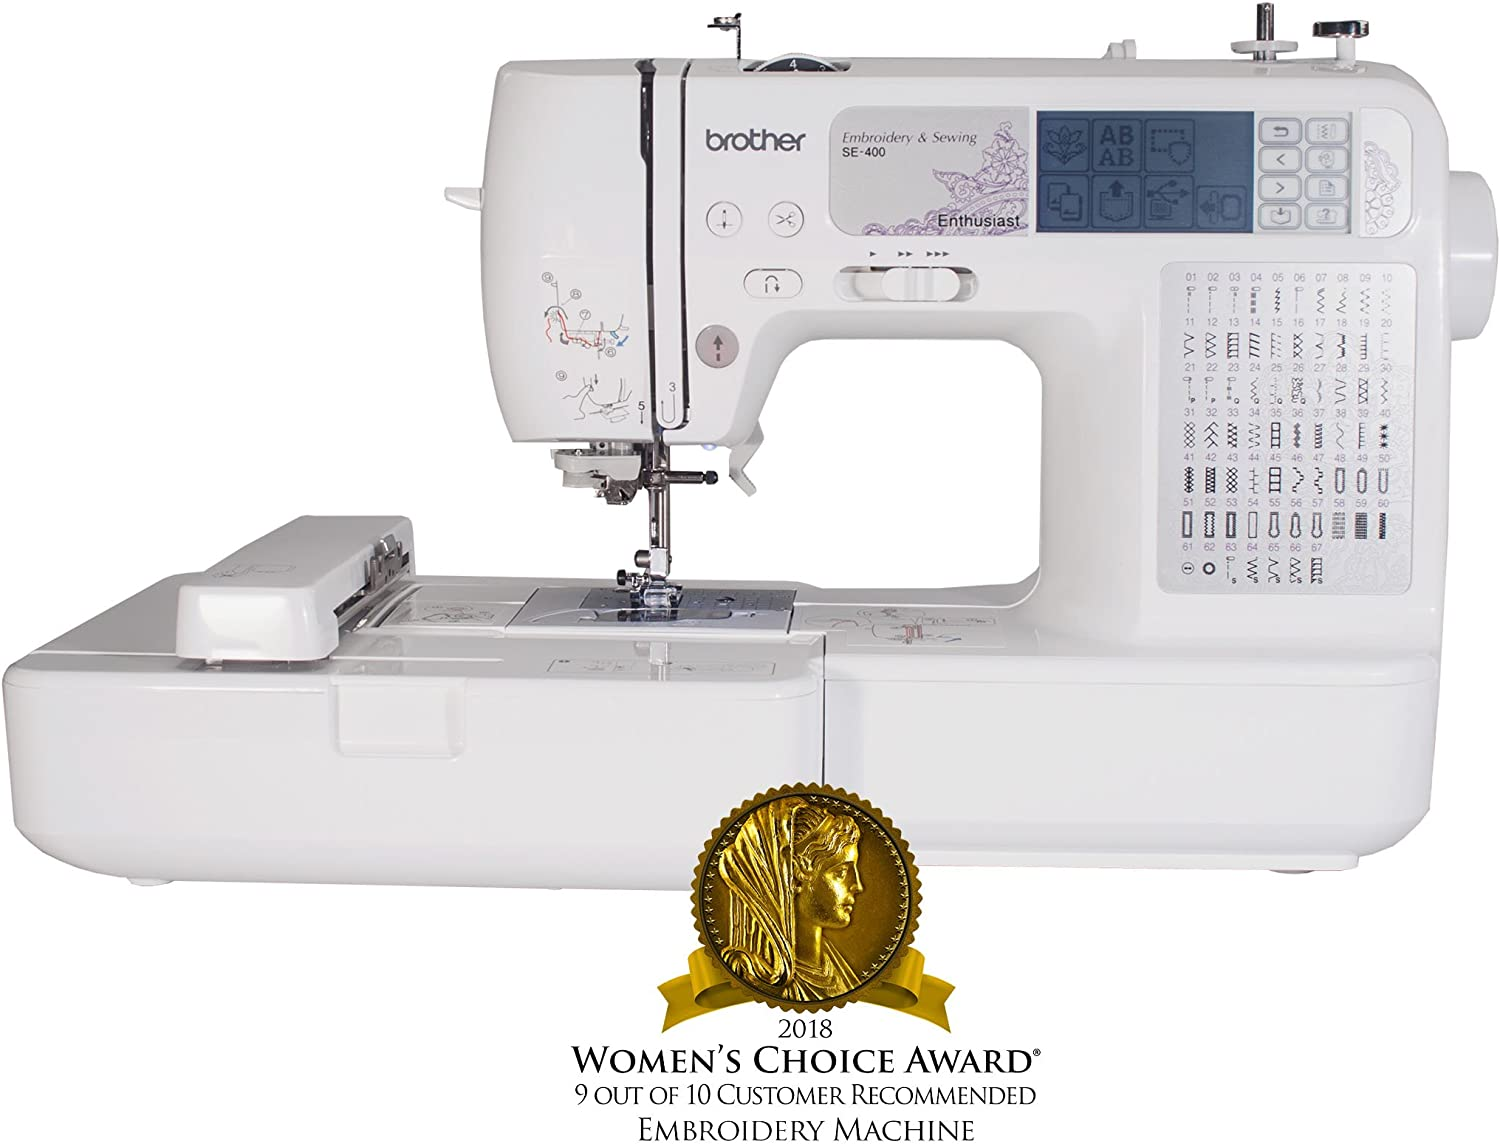 Top 8 Best Sewing Machine For Quilting Reviews in 2019 4